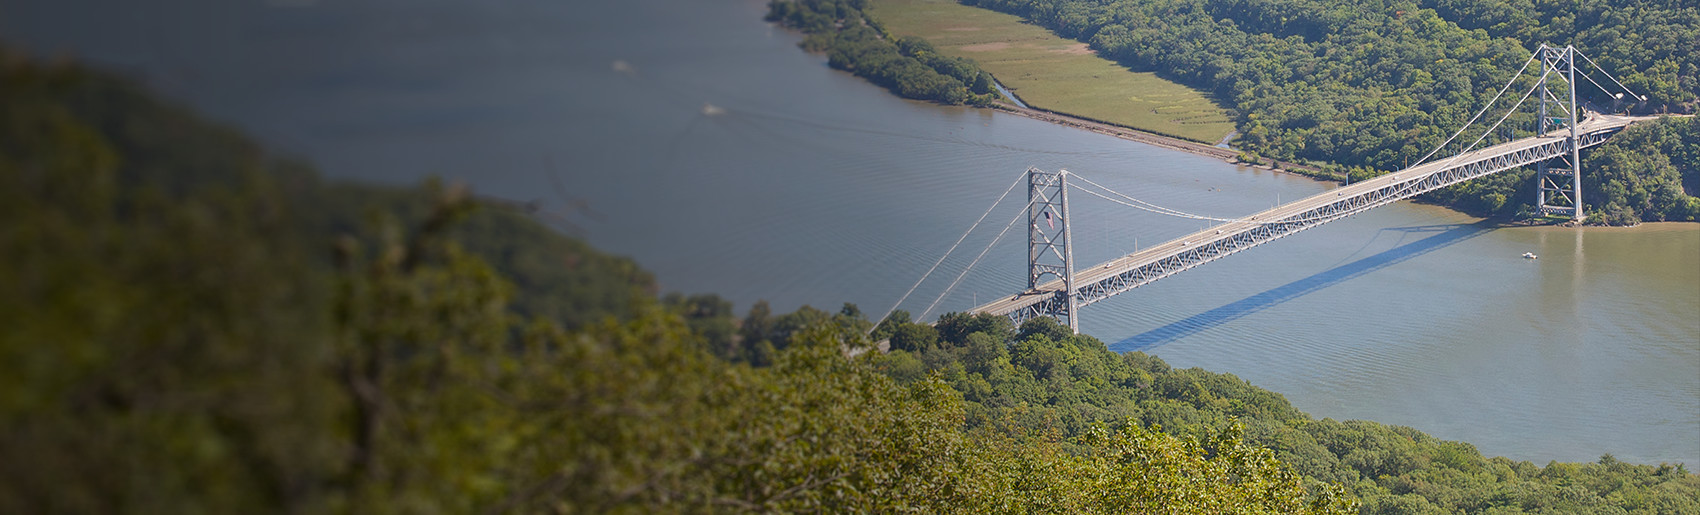 An aerial view of a bridge over a large river.